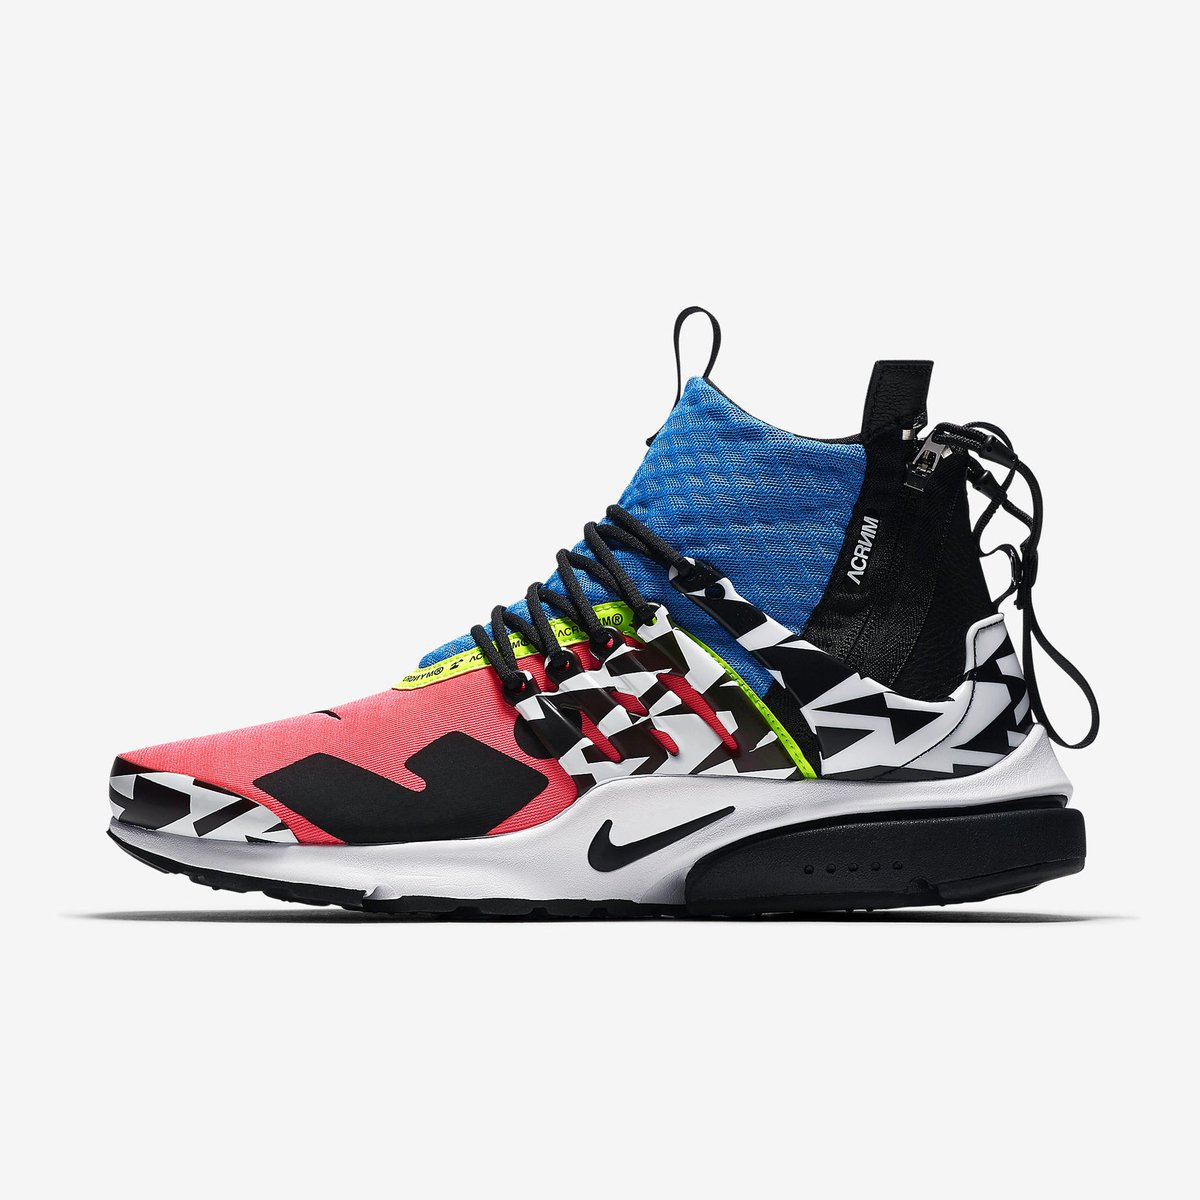 c85d4f8222ea Official Nike images of the upcoming Racer Pink Photo Blue ACRONYM x Nike  Air Presto